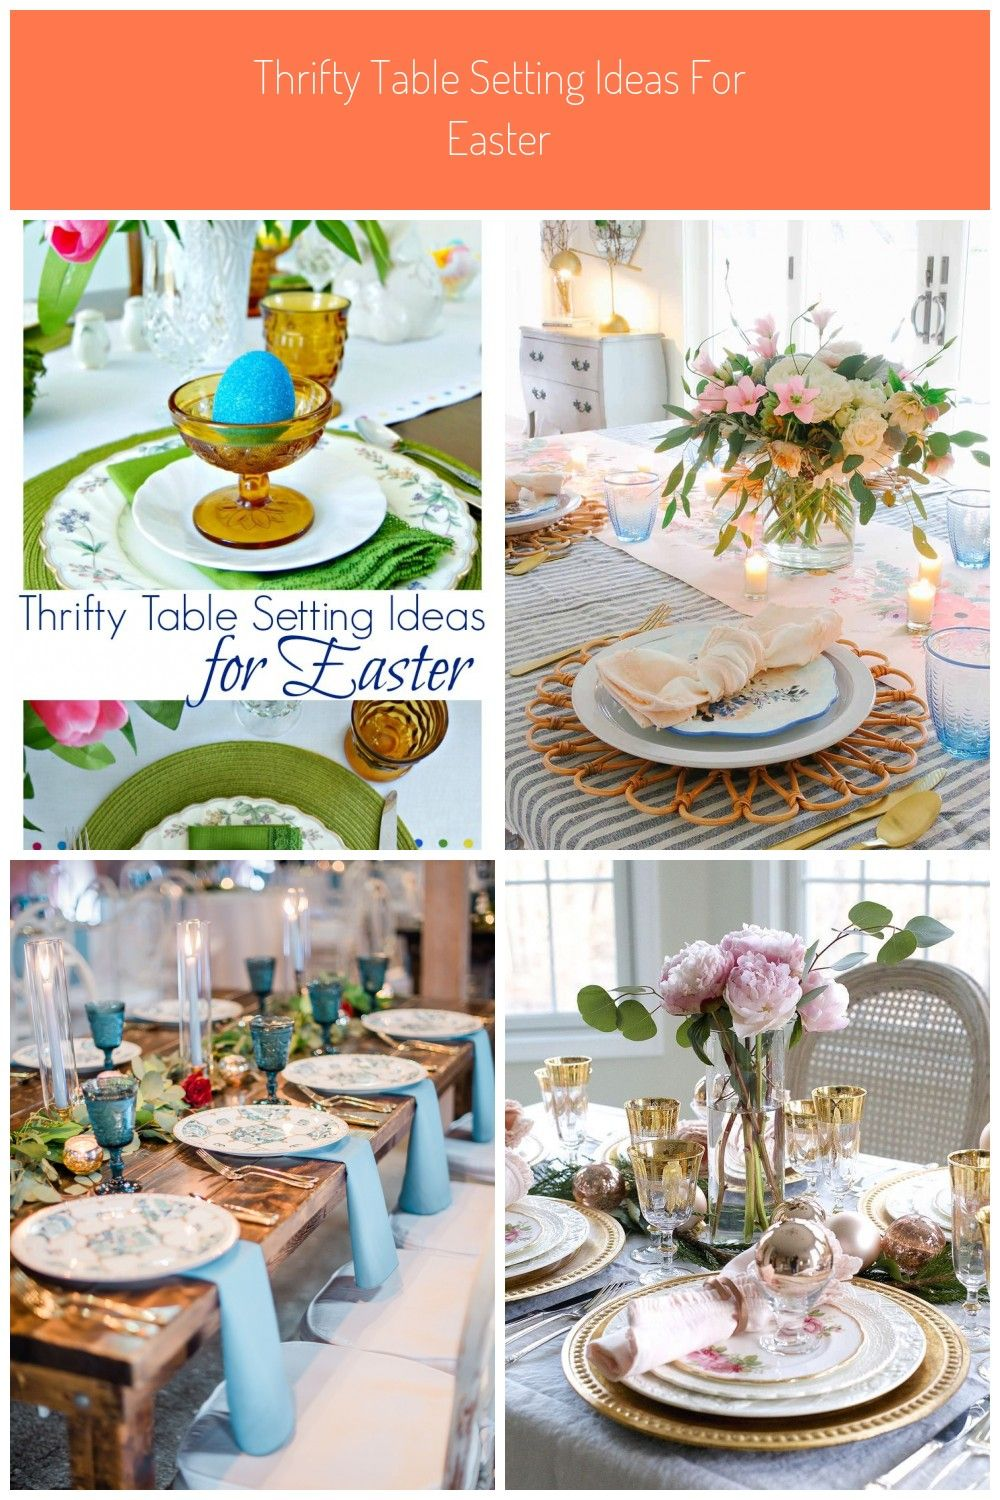 Fabulous Tips For Thrifty Table Setting Ideas For Any Party Ways To Save On Any Tablescape Pink And In 2020 Table Settings Spring Table Settings Easter Table Settings